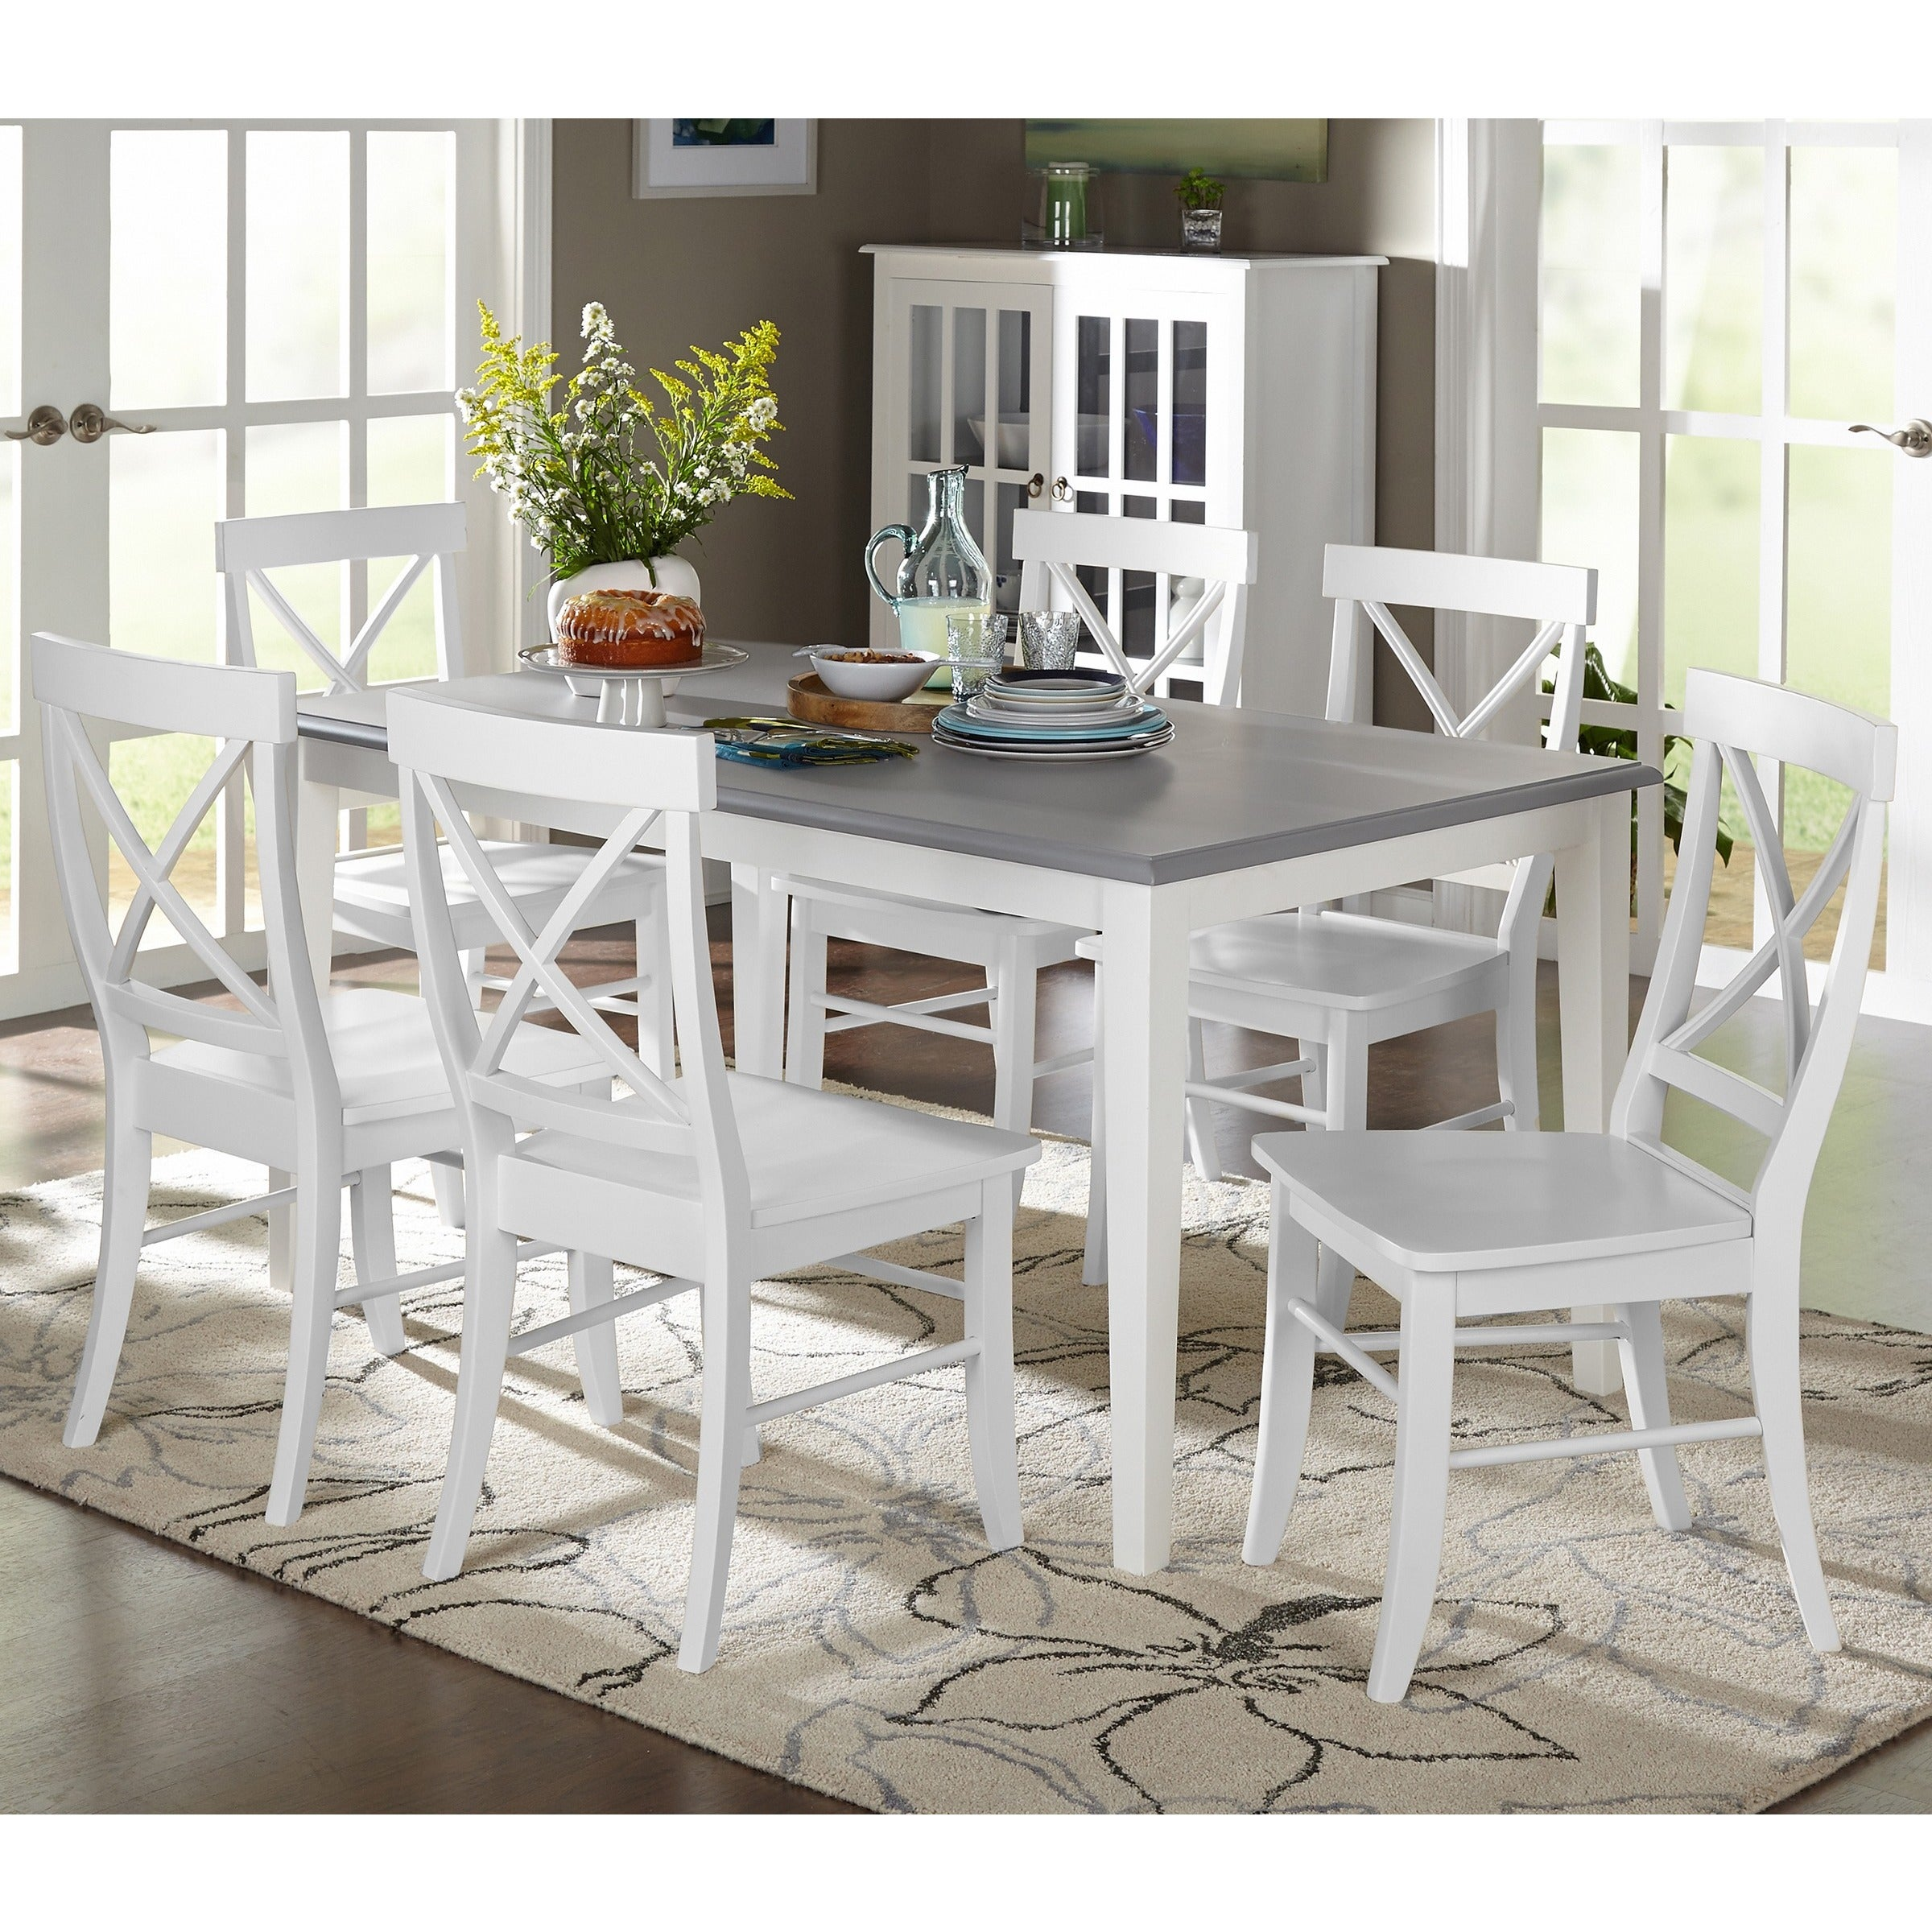 Simple Living 7-piece Helena Dining Set : dining room table and chairs - lorbestier.org